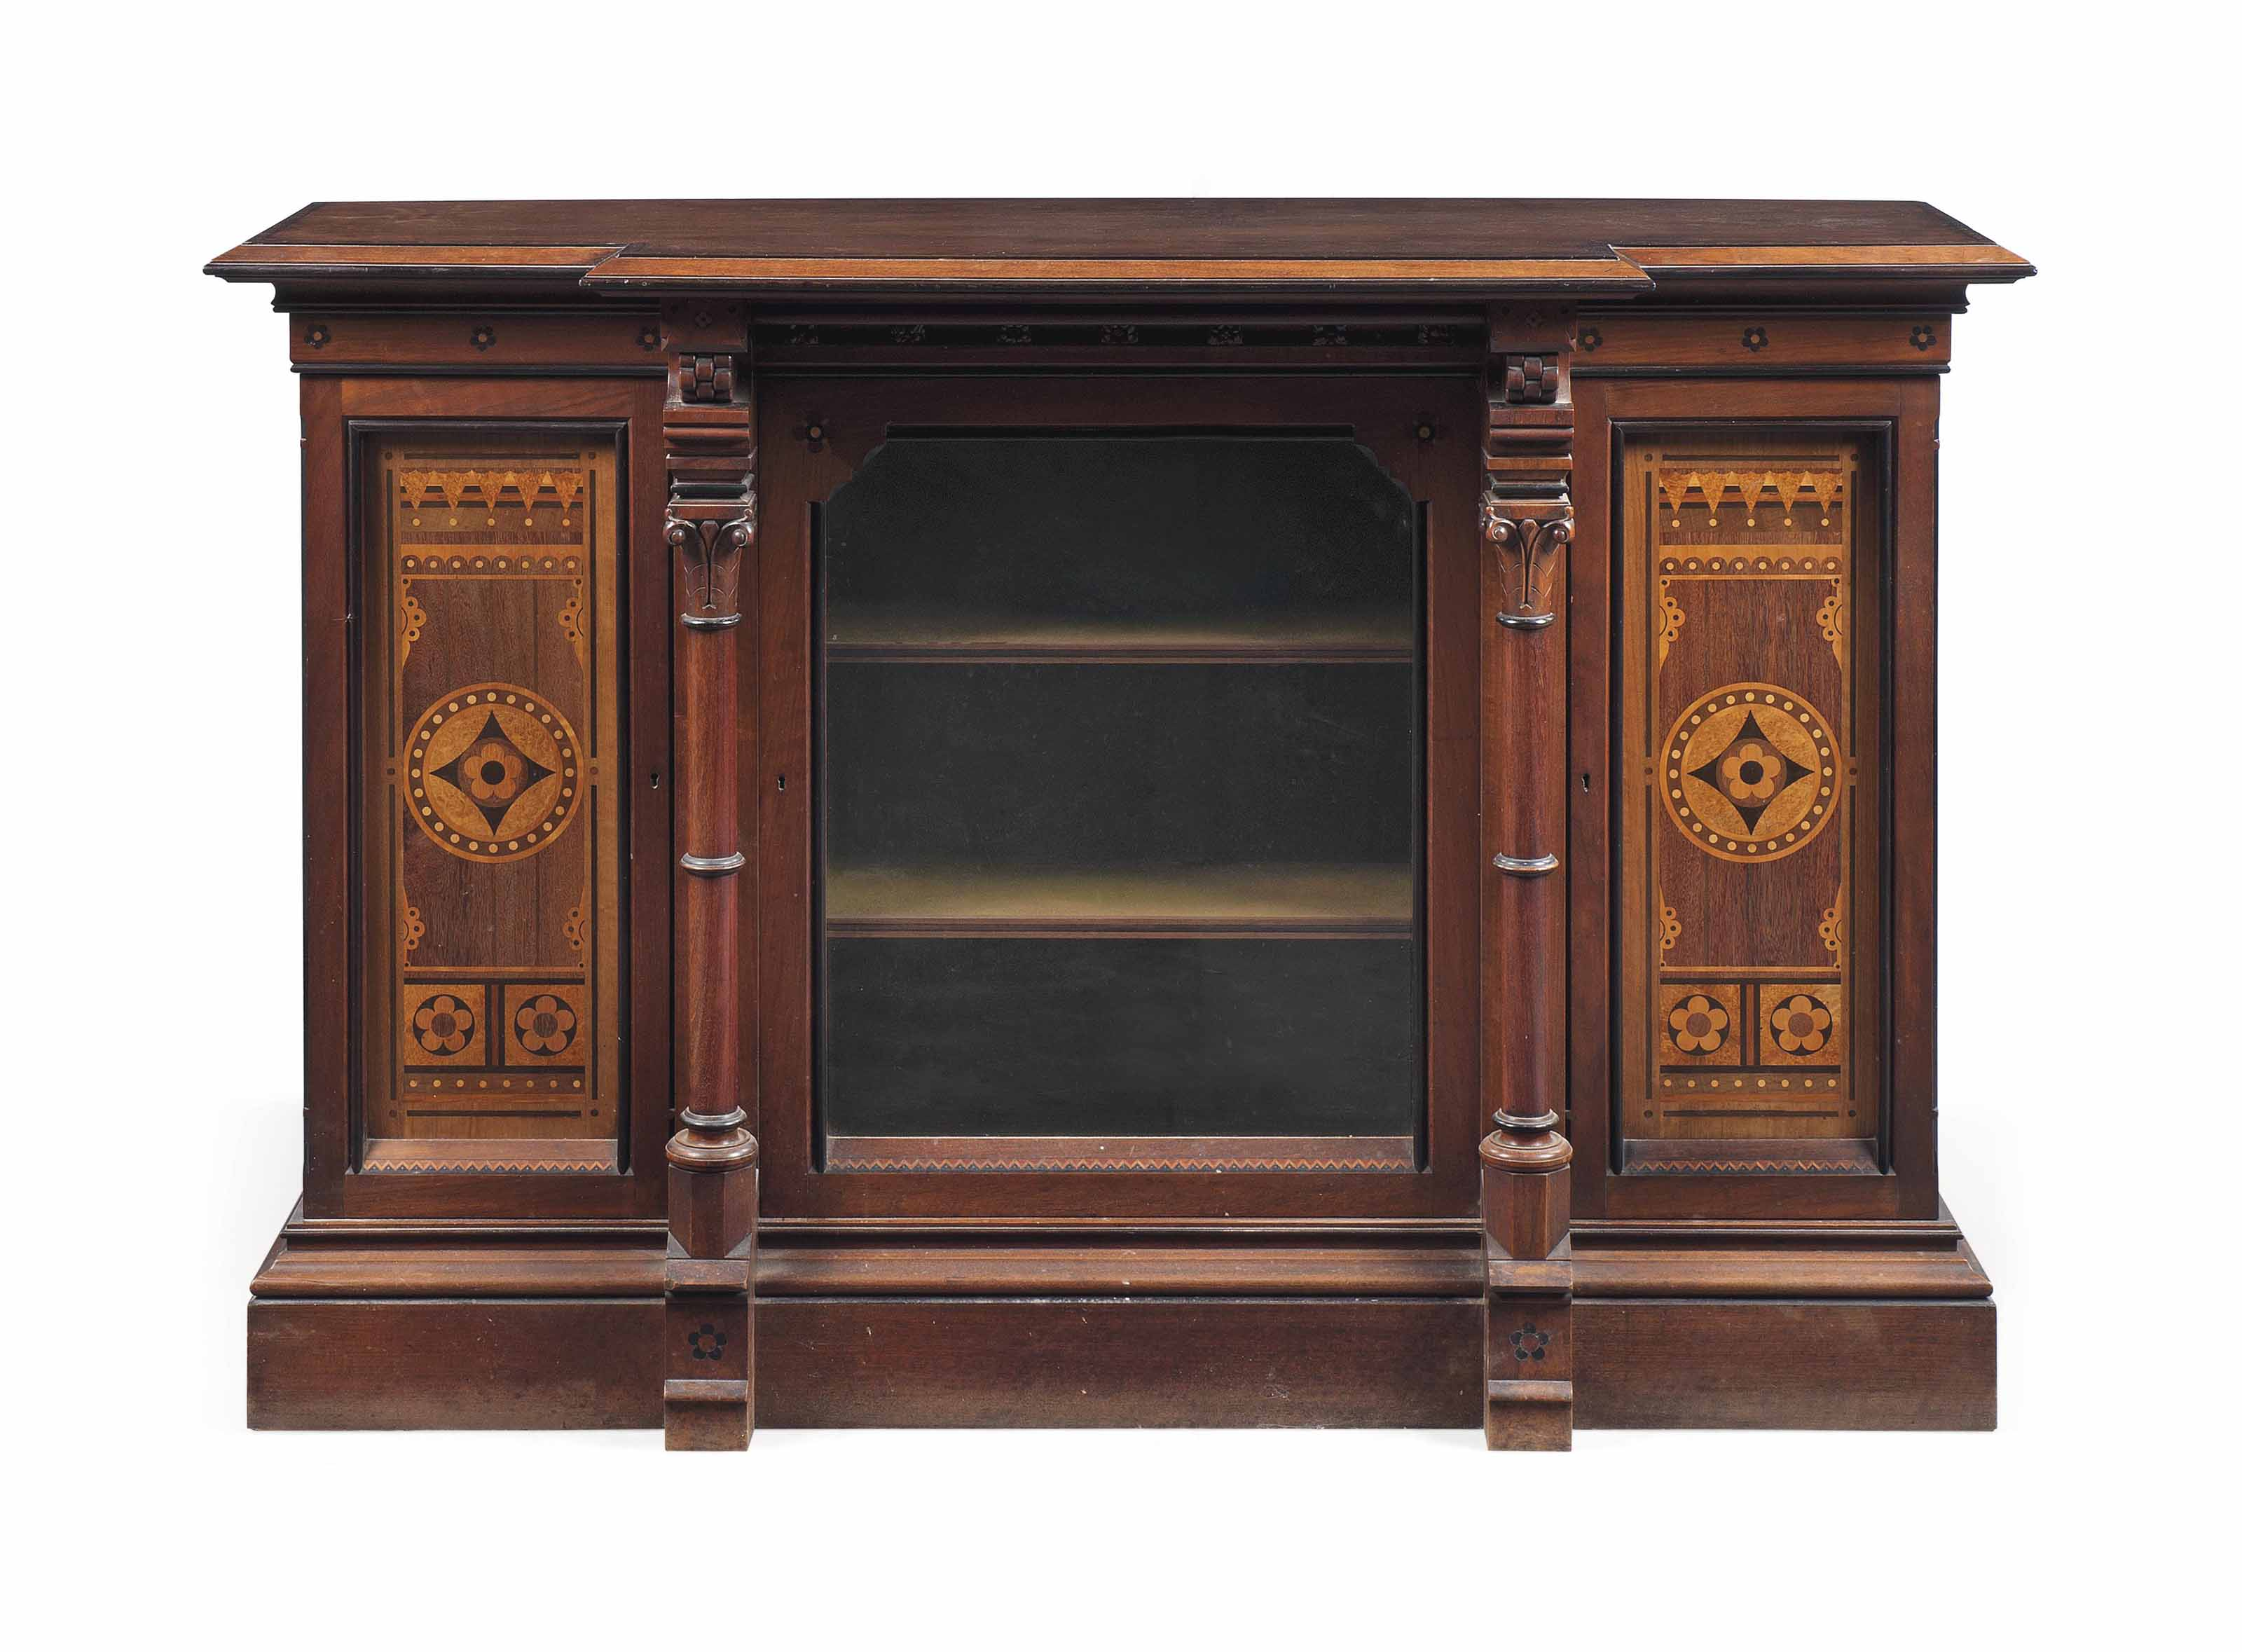 A VICTORIAN GOTHIC REVIVAL SOLID WALNUT AND MARQUETRY SIDE CABINET